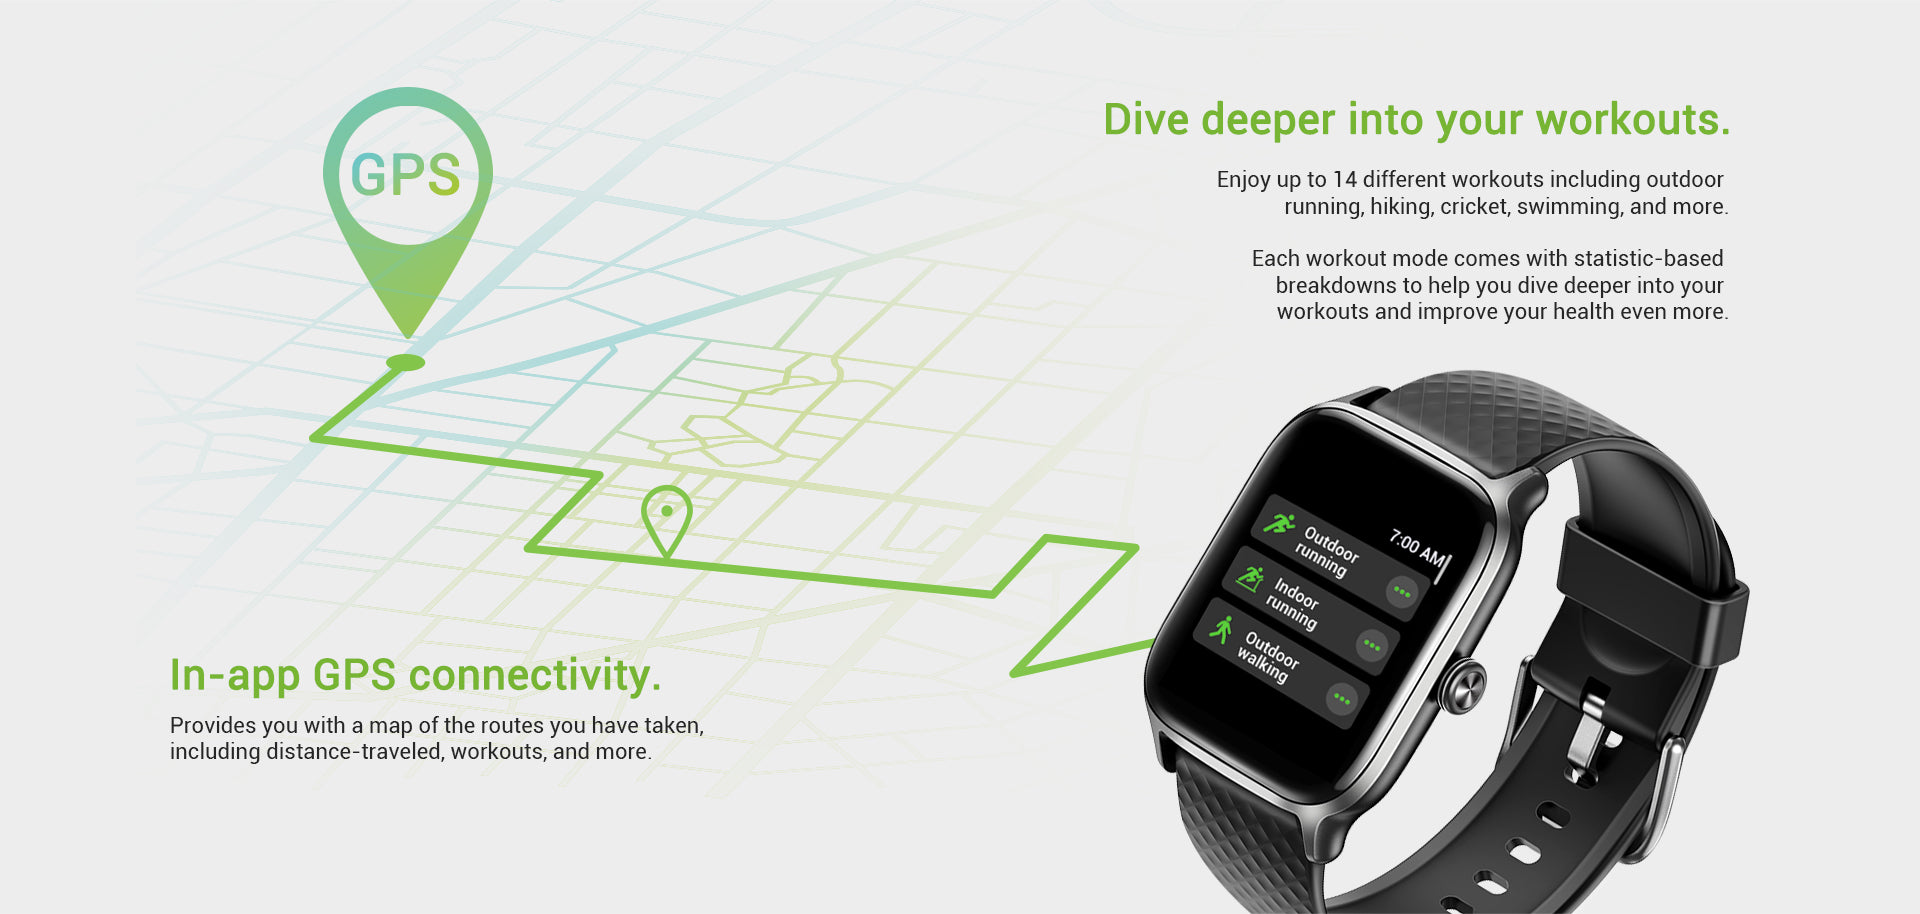 In-app GPS connectivity. Provides you with a map of the routes you have taken, including distance-traveled, workouts, and more.